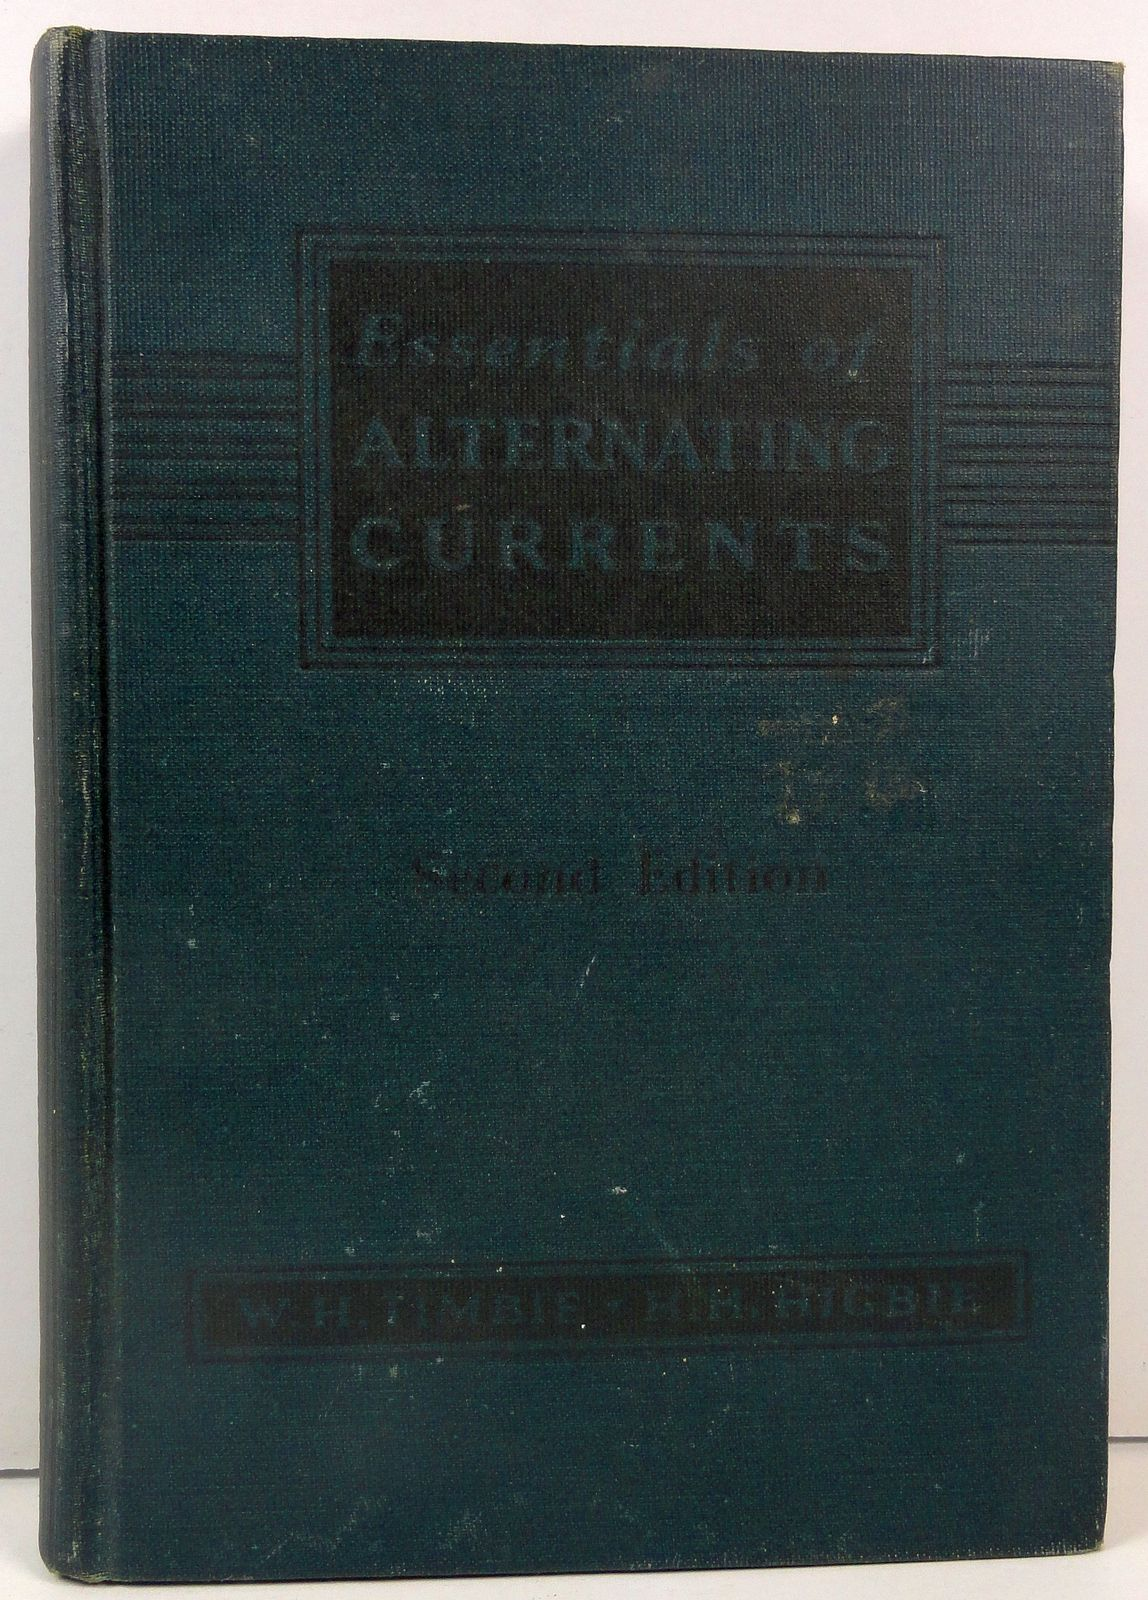 Essentials of Alternating Currents Timbie and Higbie 1939